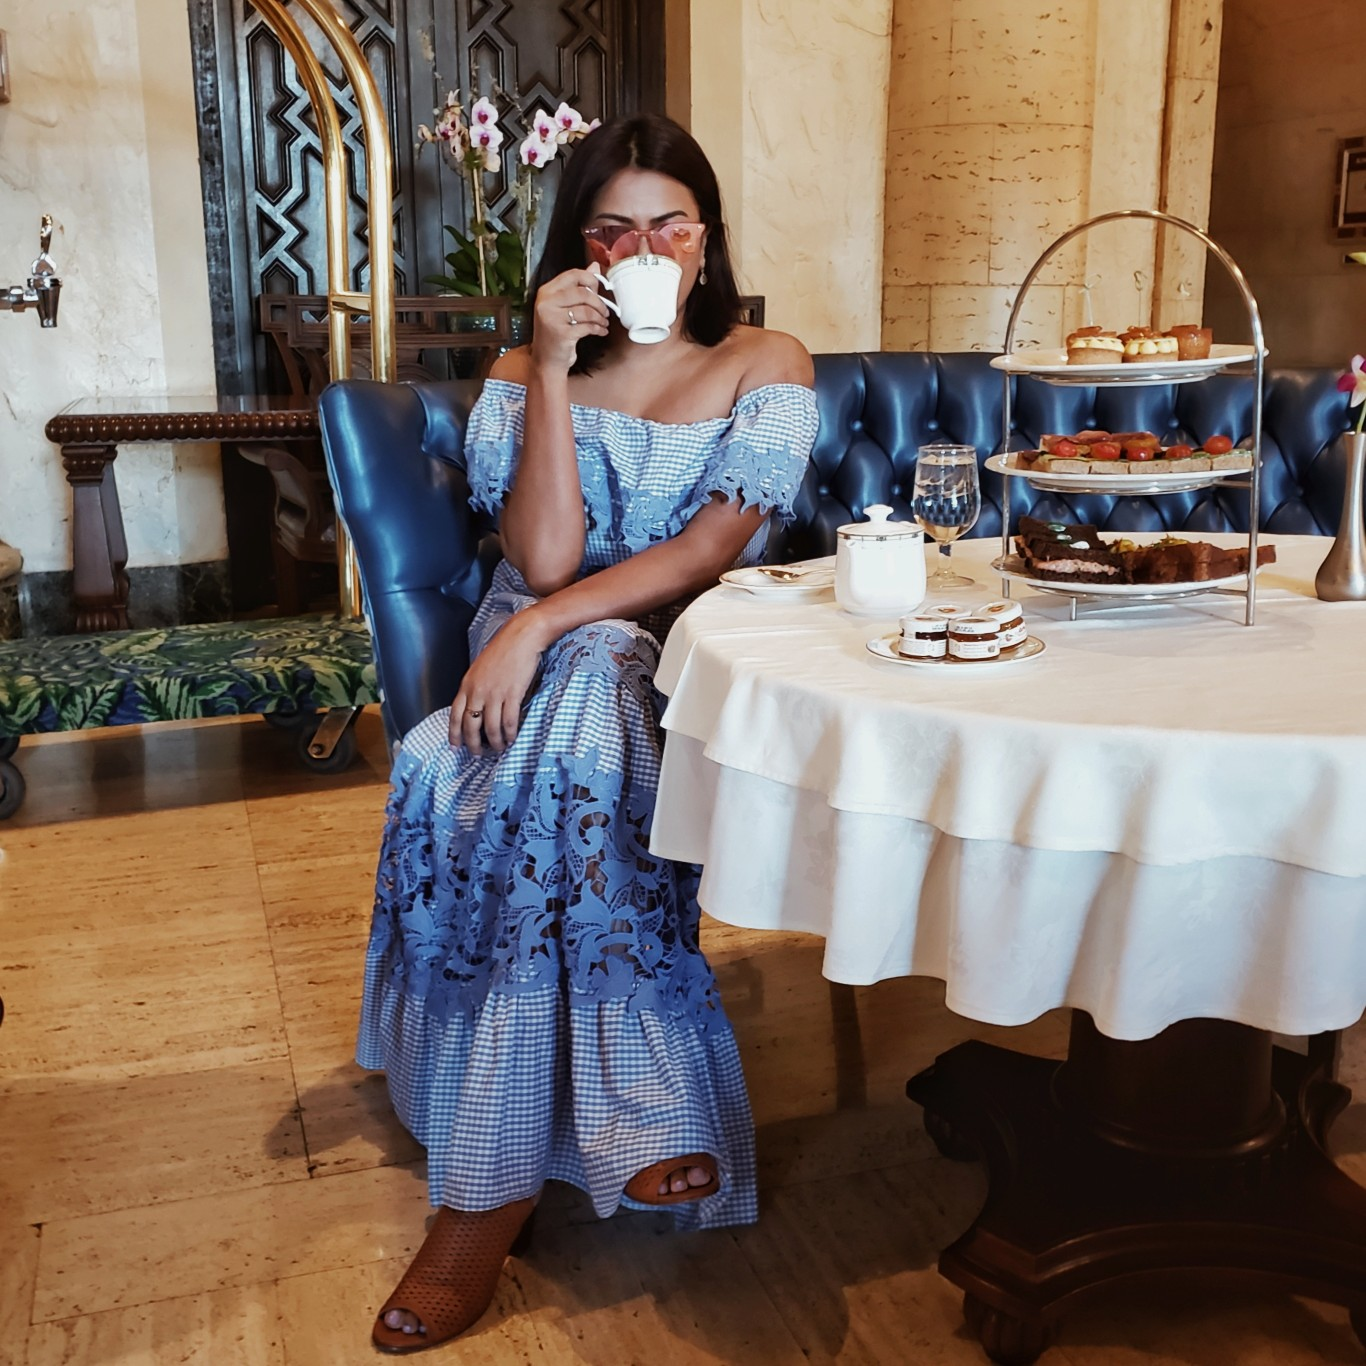 Miami Blogger wearing maxi gingham dress sipping tea at Biltmore Coral Gables